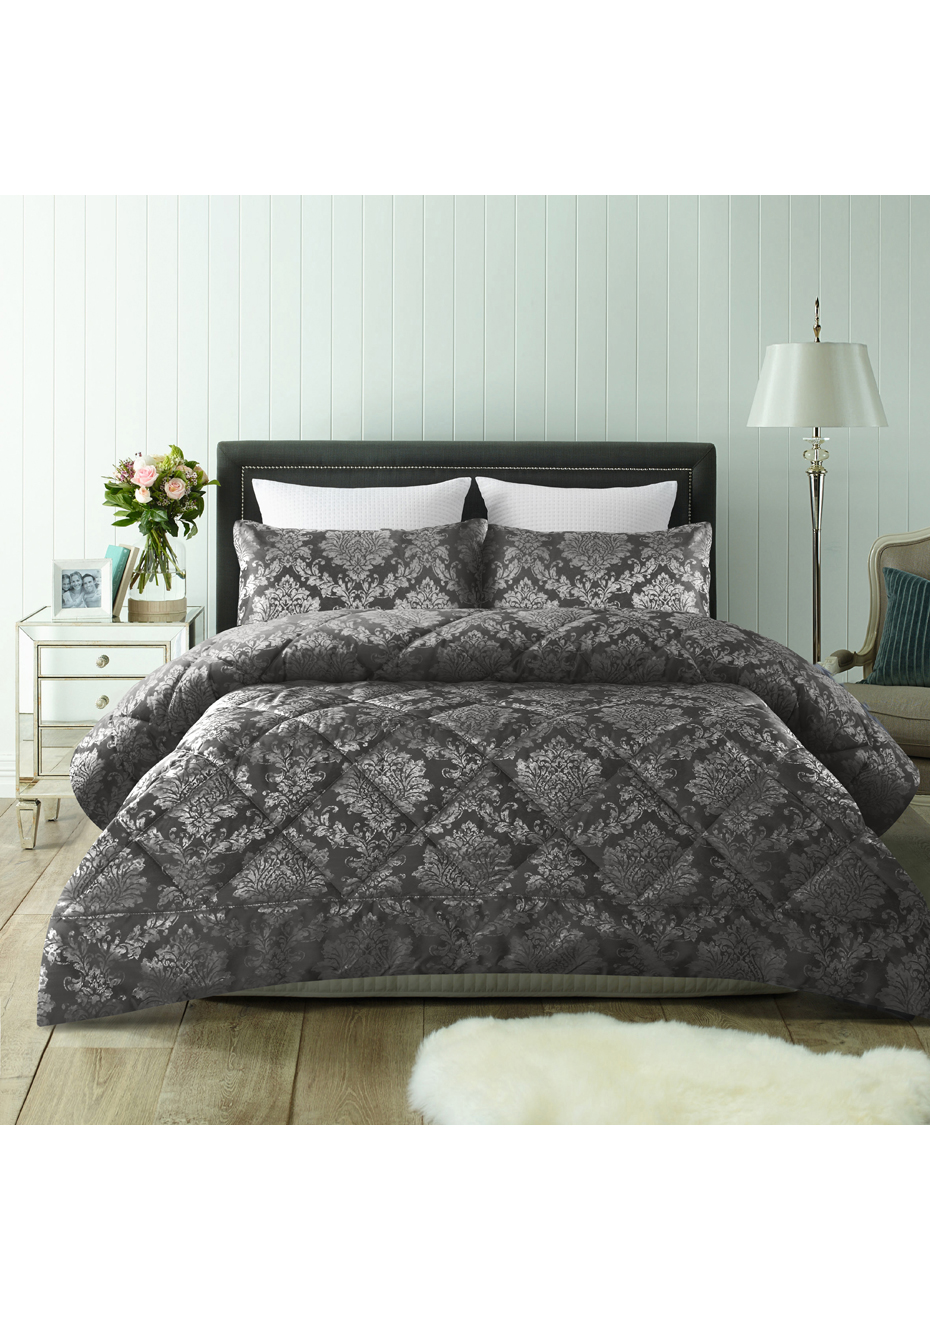 QUEEN KING 3 Piece Hendry Grey Jacquard Comforter Set by Accessorize